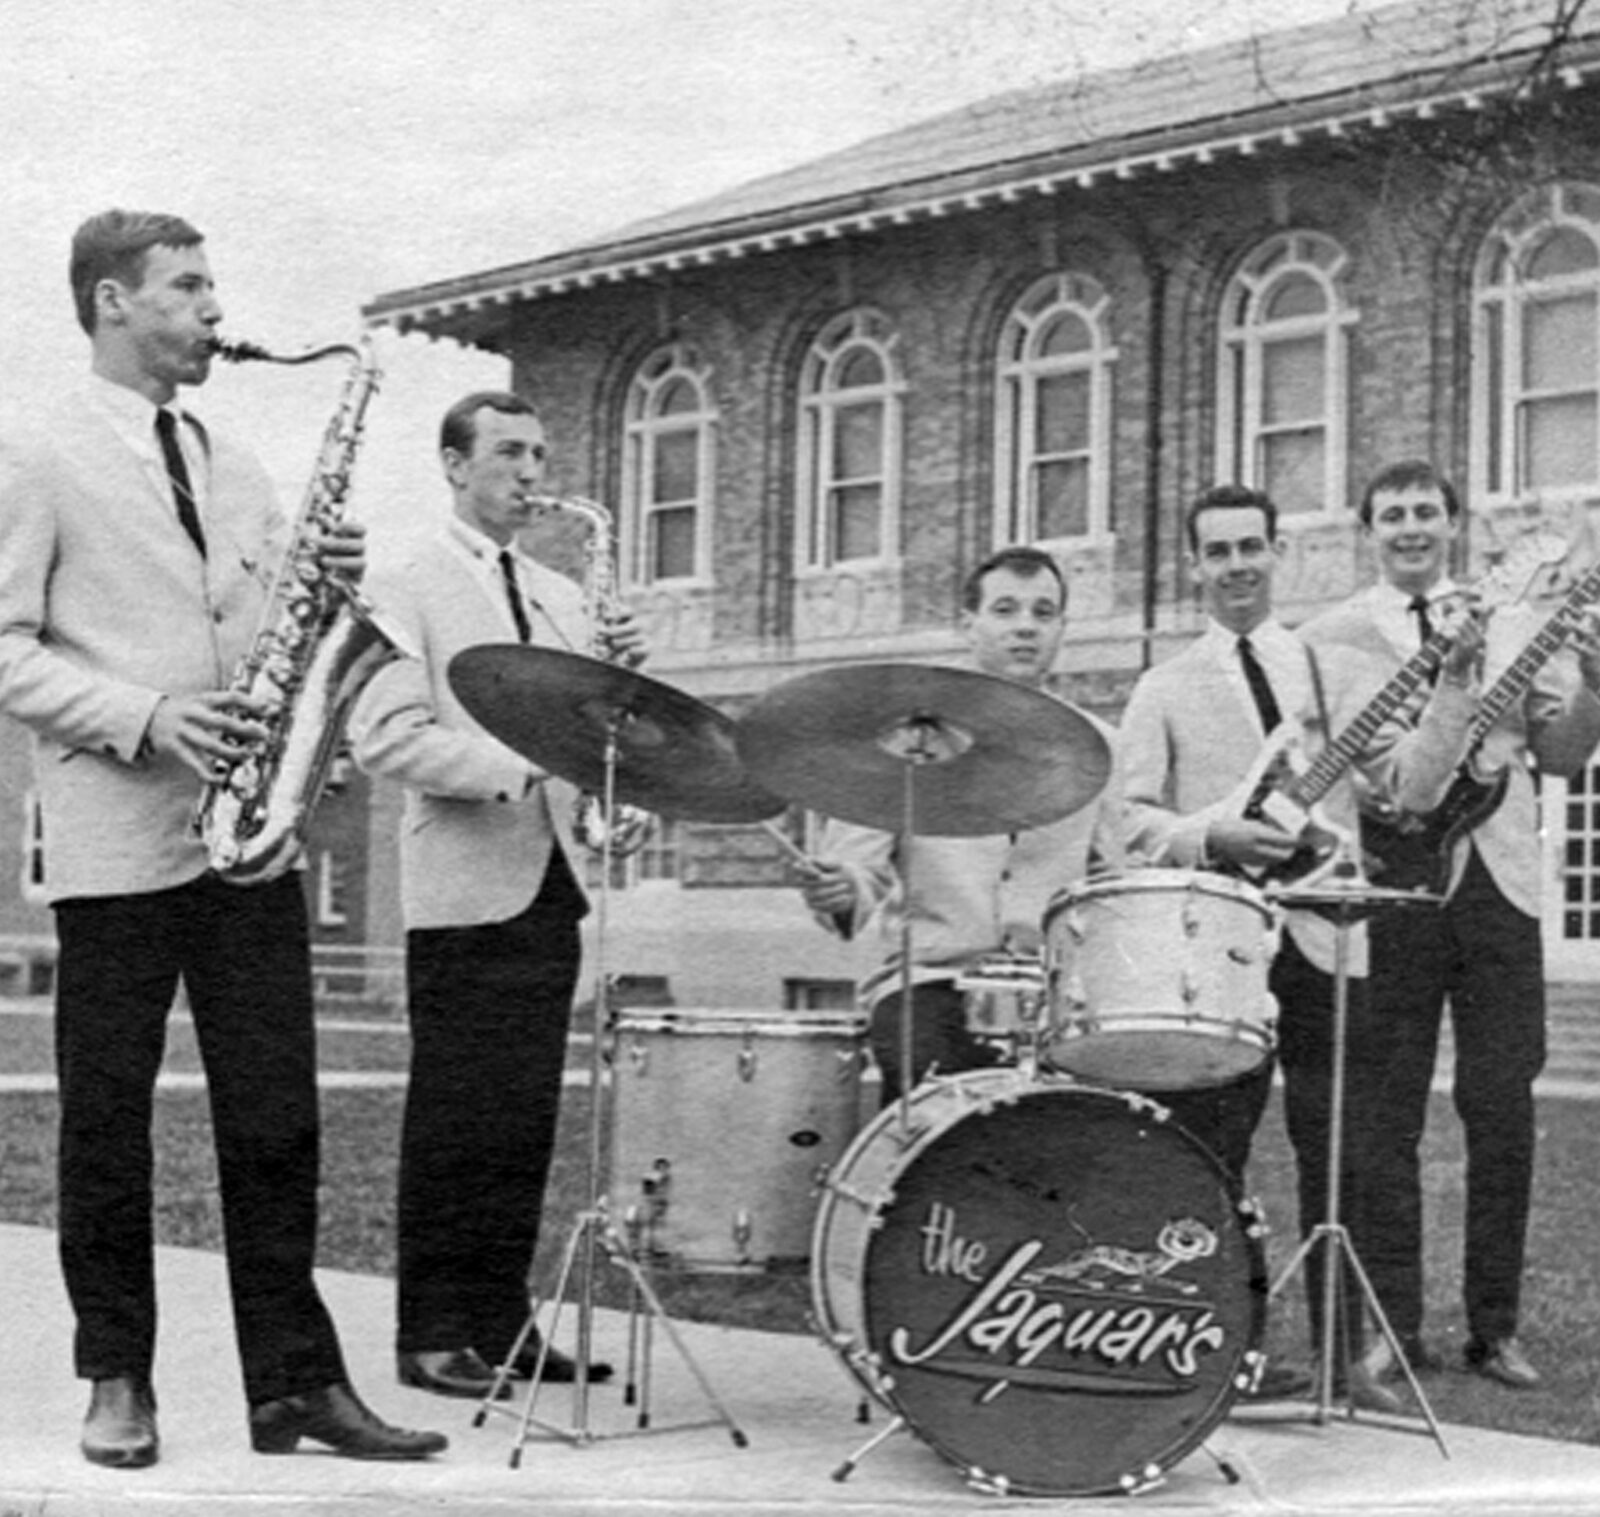 Members of the Jaguars pose in front of Parker Hall in 1965. From left: Bill Meeker, Jim Labit, Jack McAlister, Don Bowman and Don Copeland.